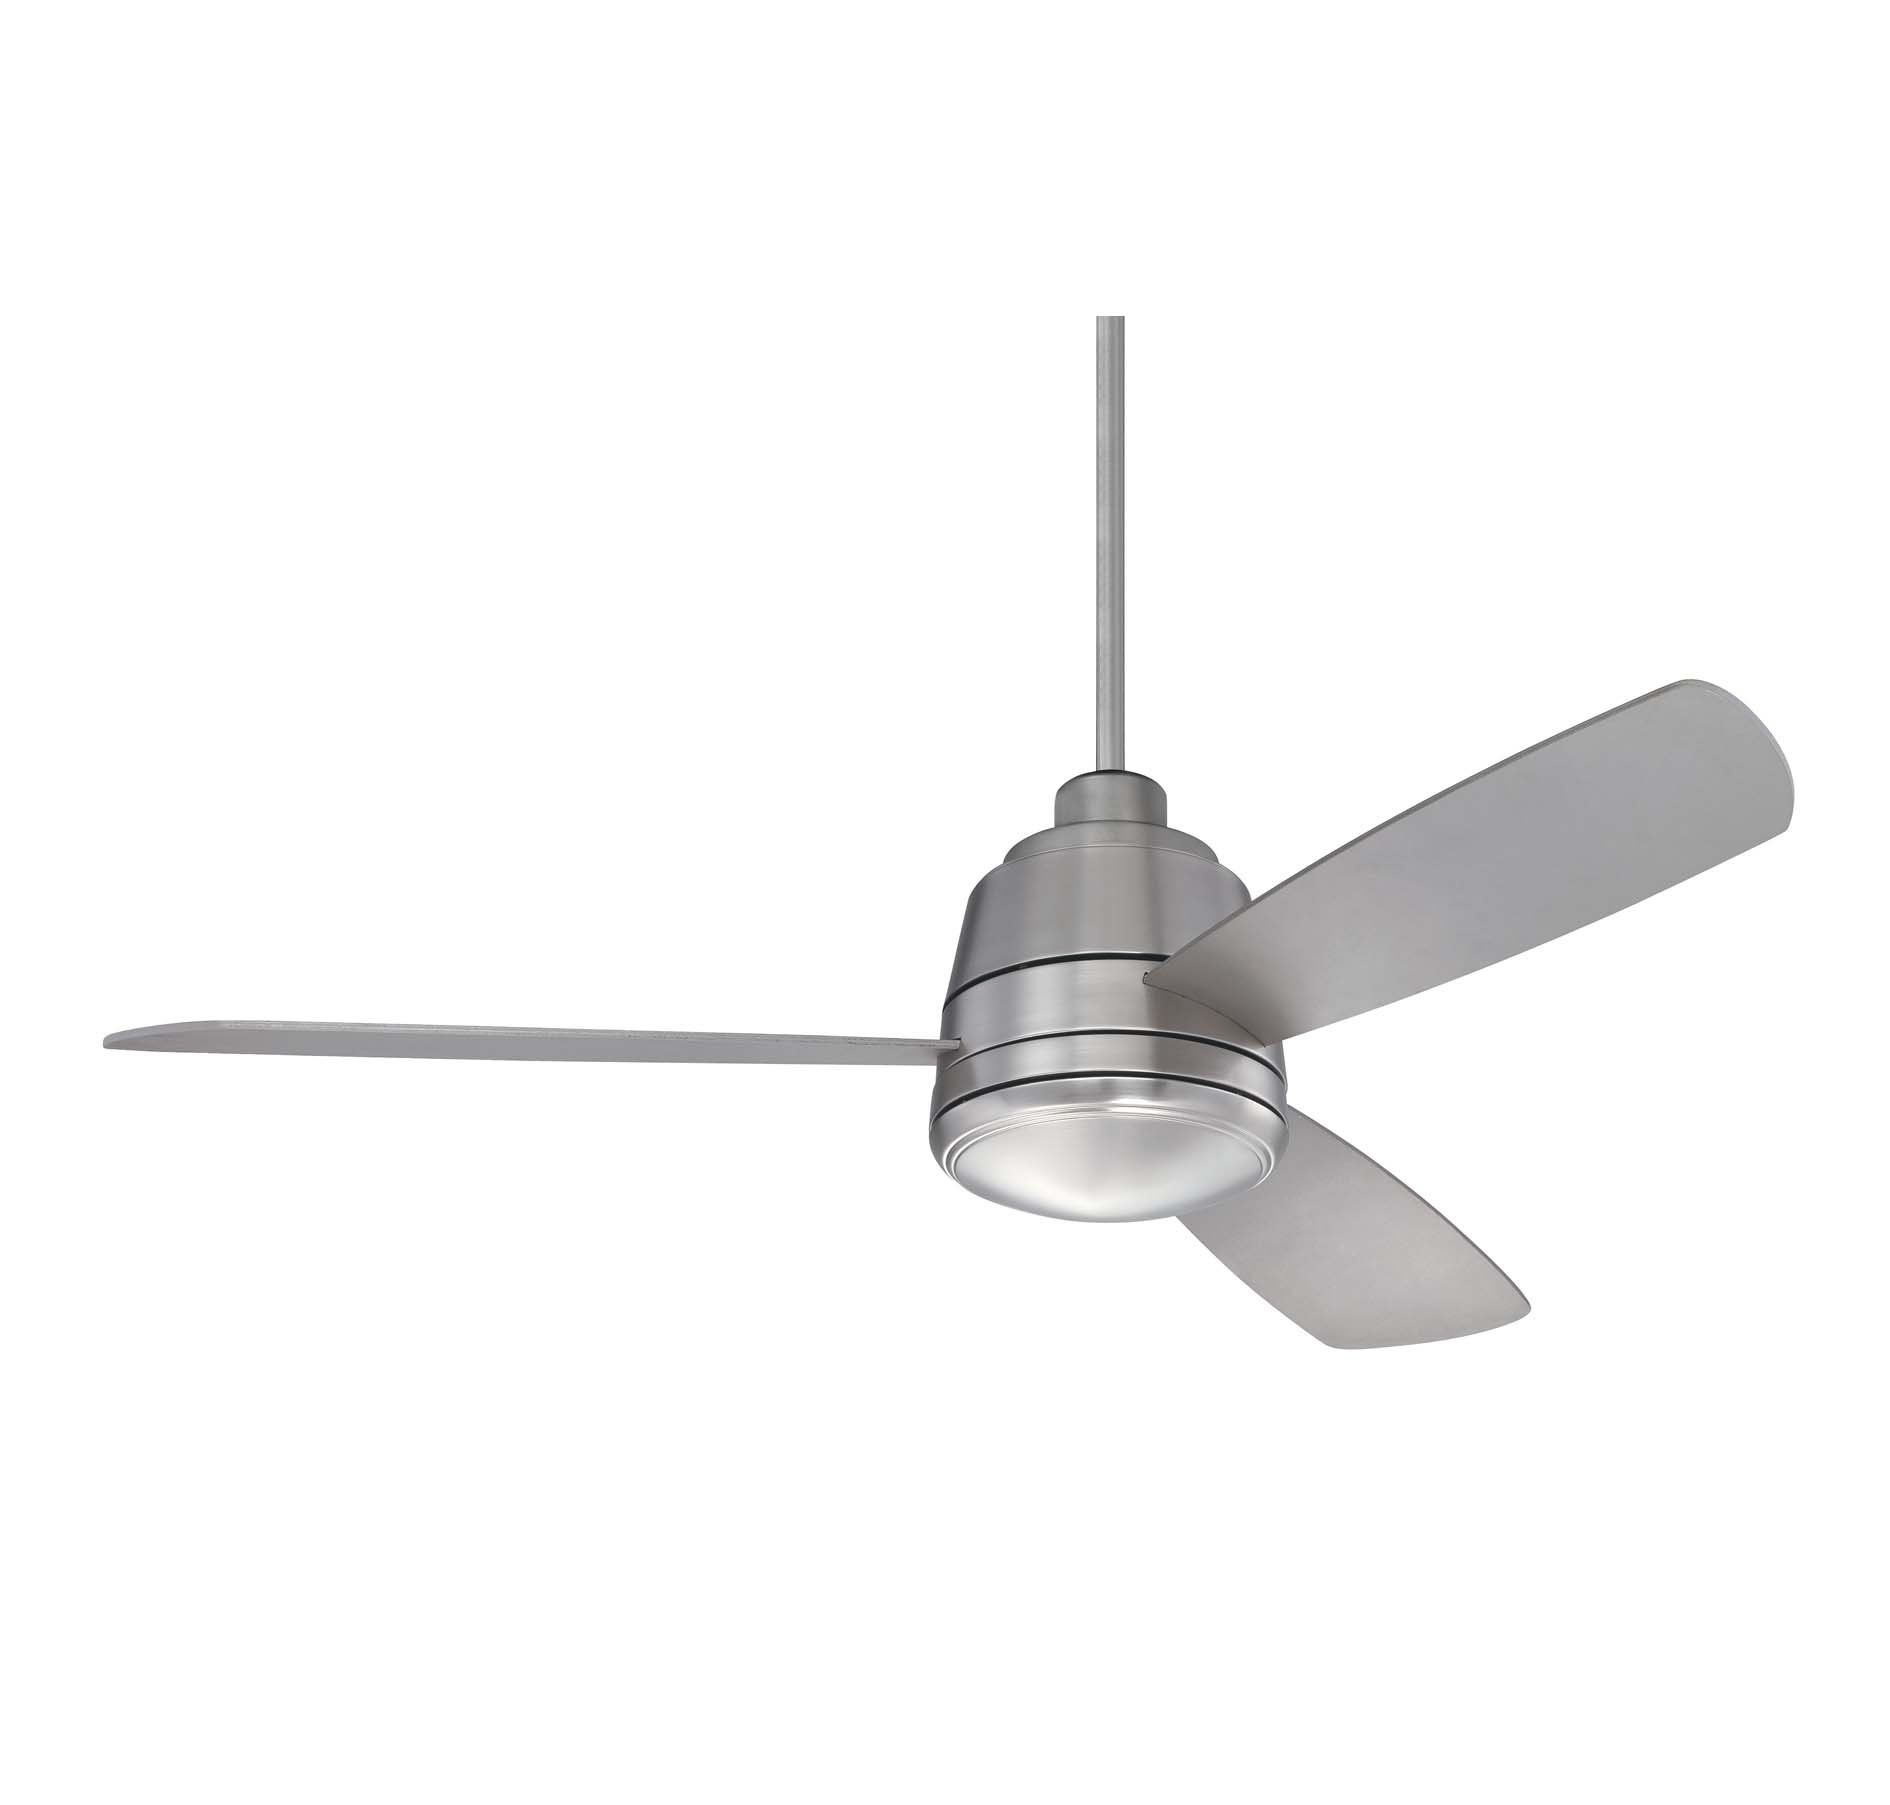 Polaris ceiling fan with light by savoy house ceiling fans